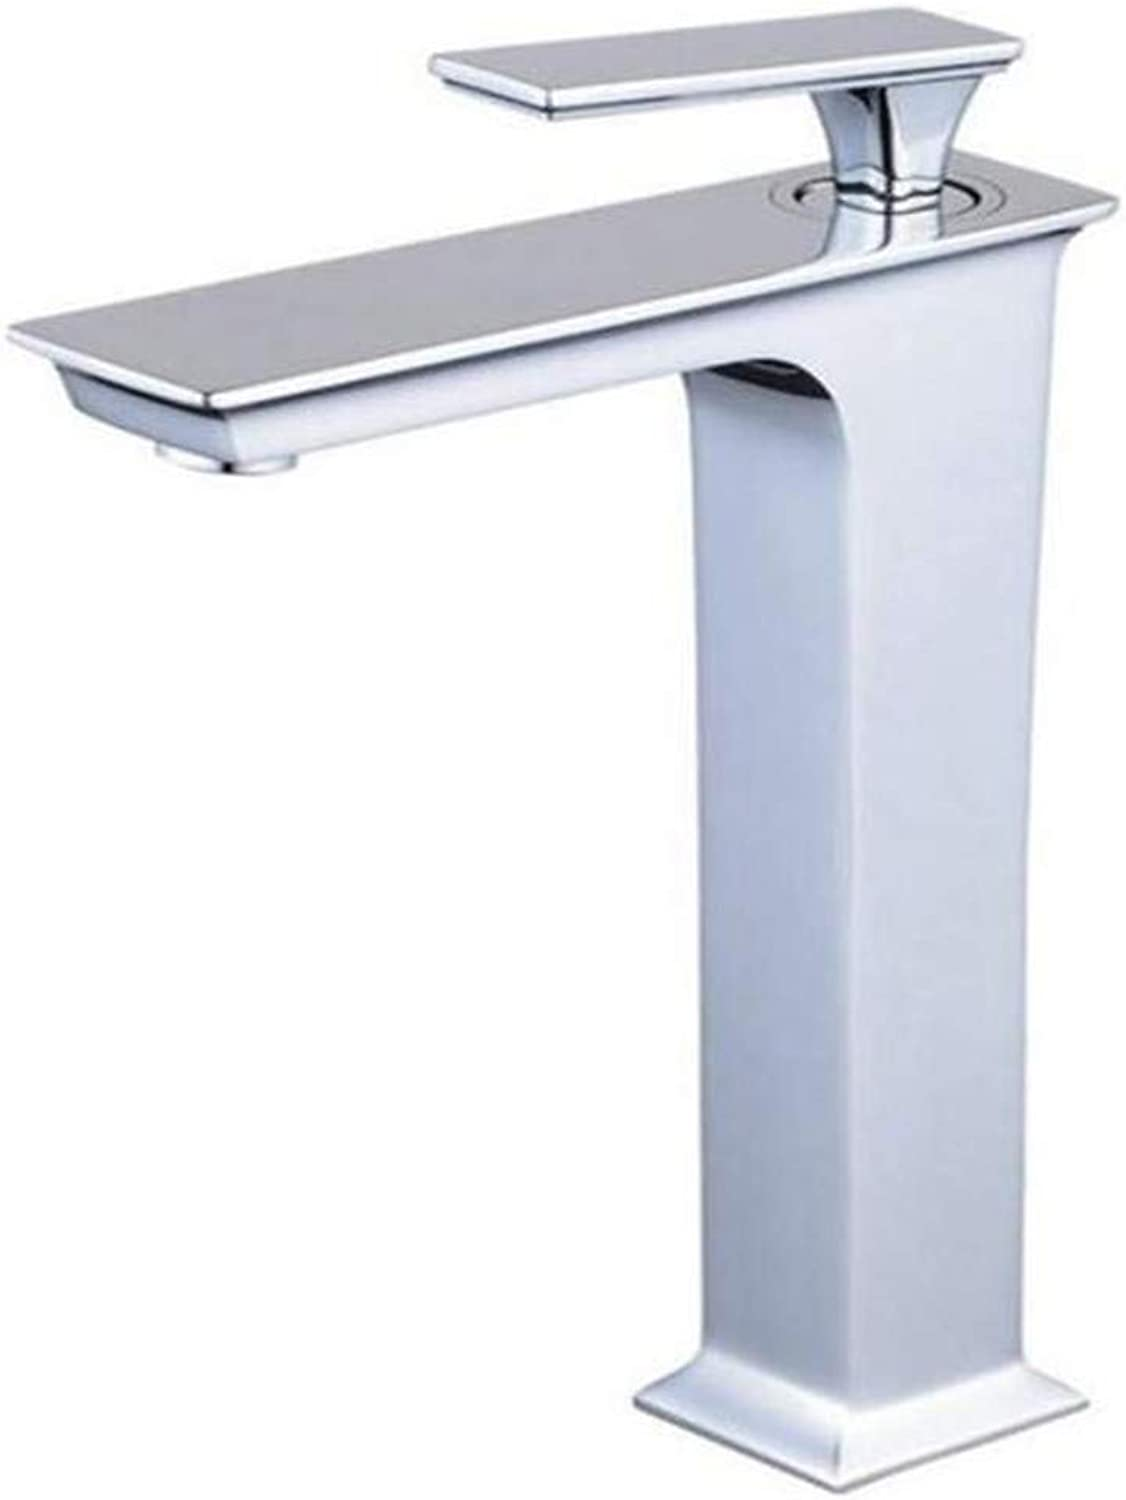 Faucet Luxury Plated Modern Faucet Faucet Washbasin Mixer Chrome Bathroom Basin Faucet Counter Basin Cold Hot Water Mixer Tap